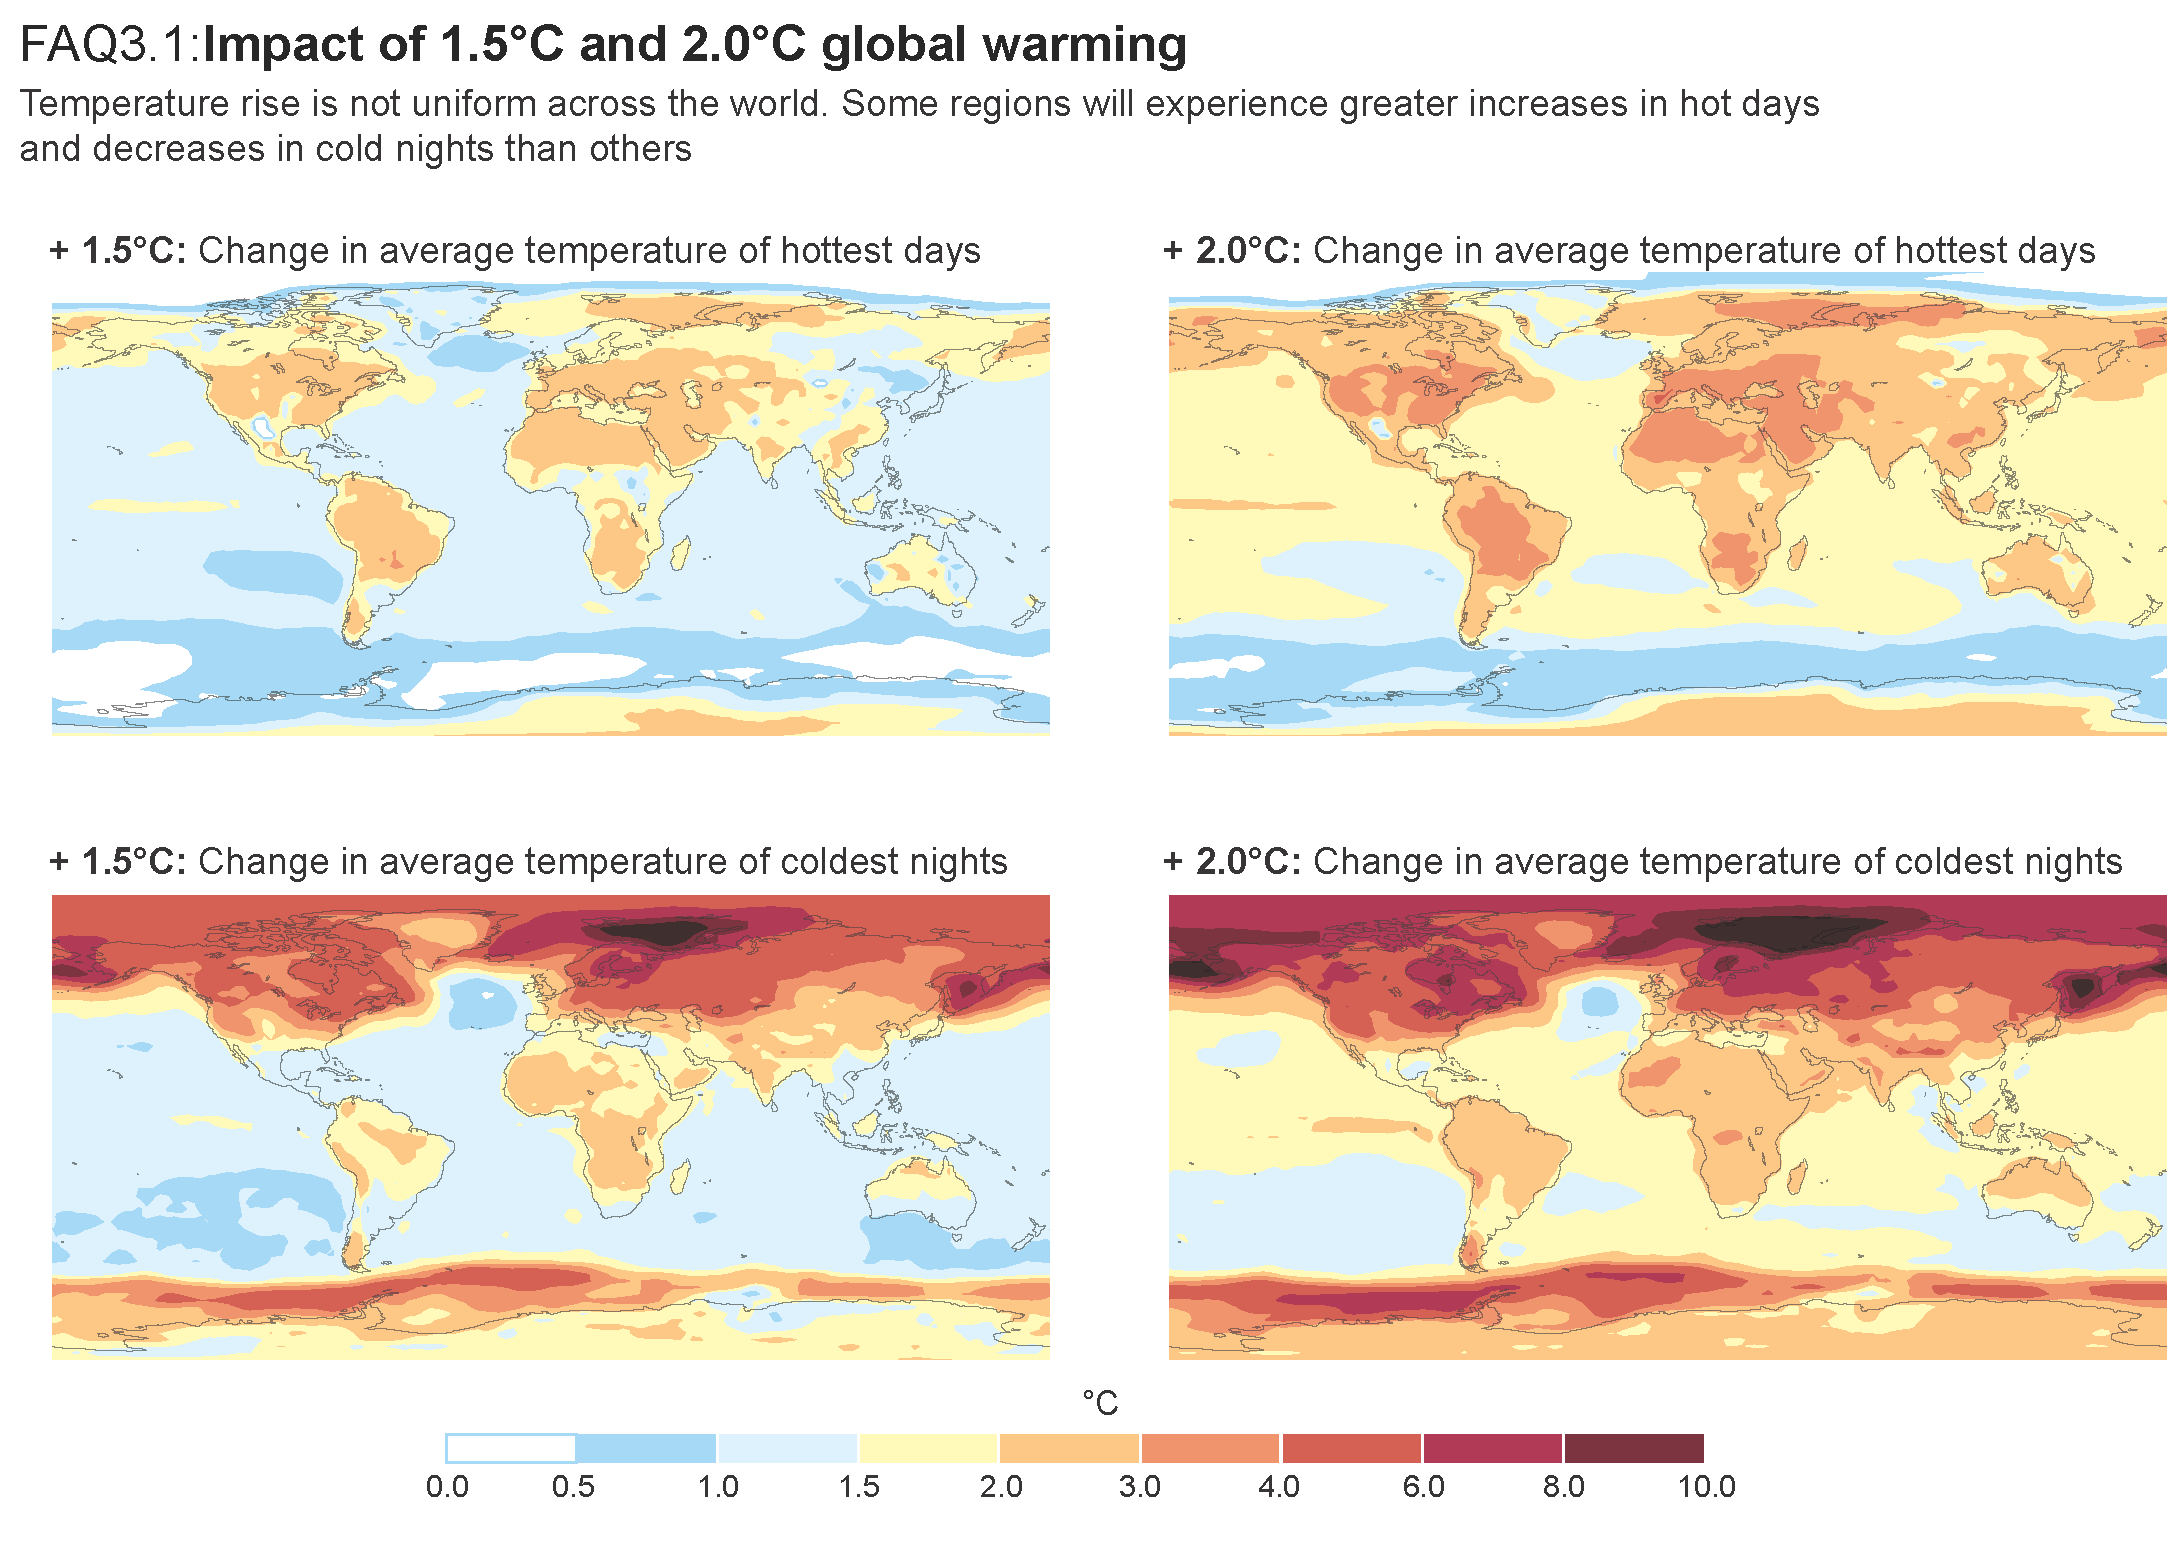 Chapter 3 — Global Warming of 1.5 ºC